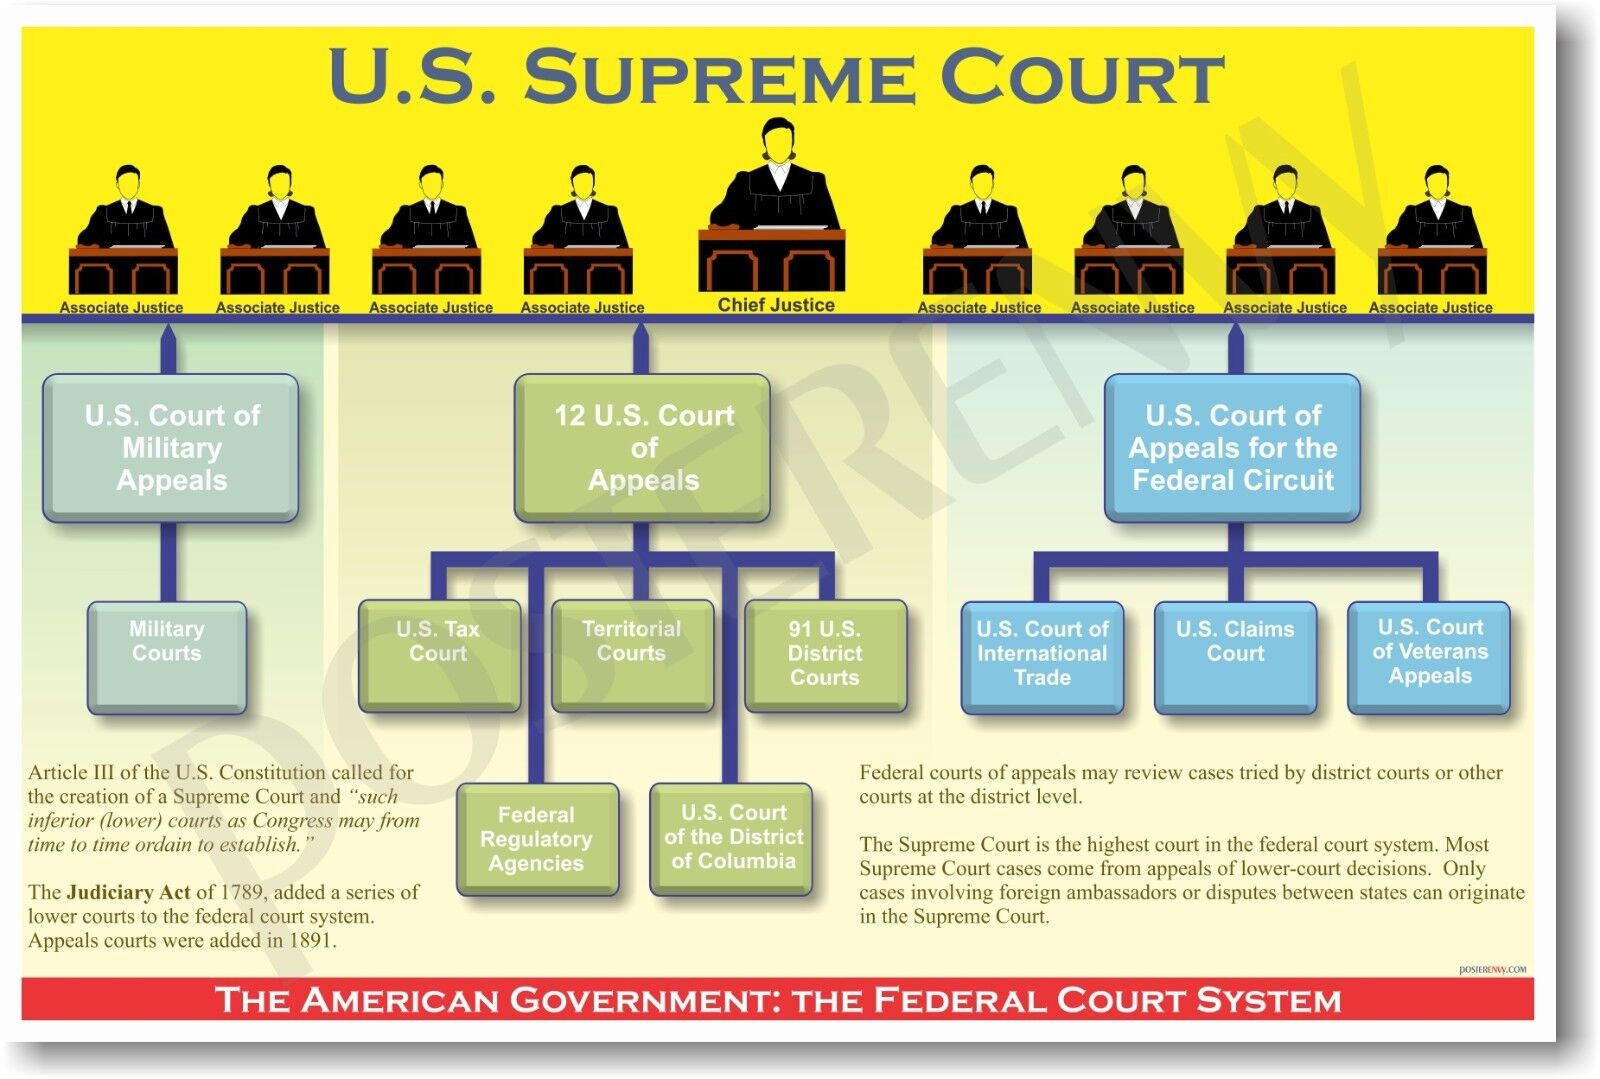 american court system The american court system is based on the english common law system the basic idea is that there are two sides, the plaintiff and the defendant, who present their arguments before an impartial judge (and sometimes a jury) in a criminal case, the prosecutor acts as a plaintiff on behalf of the citizens or state.